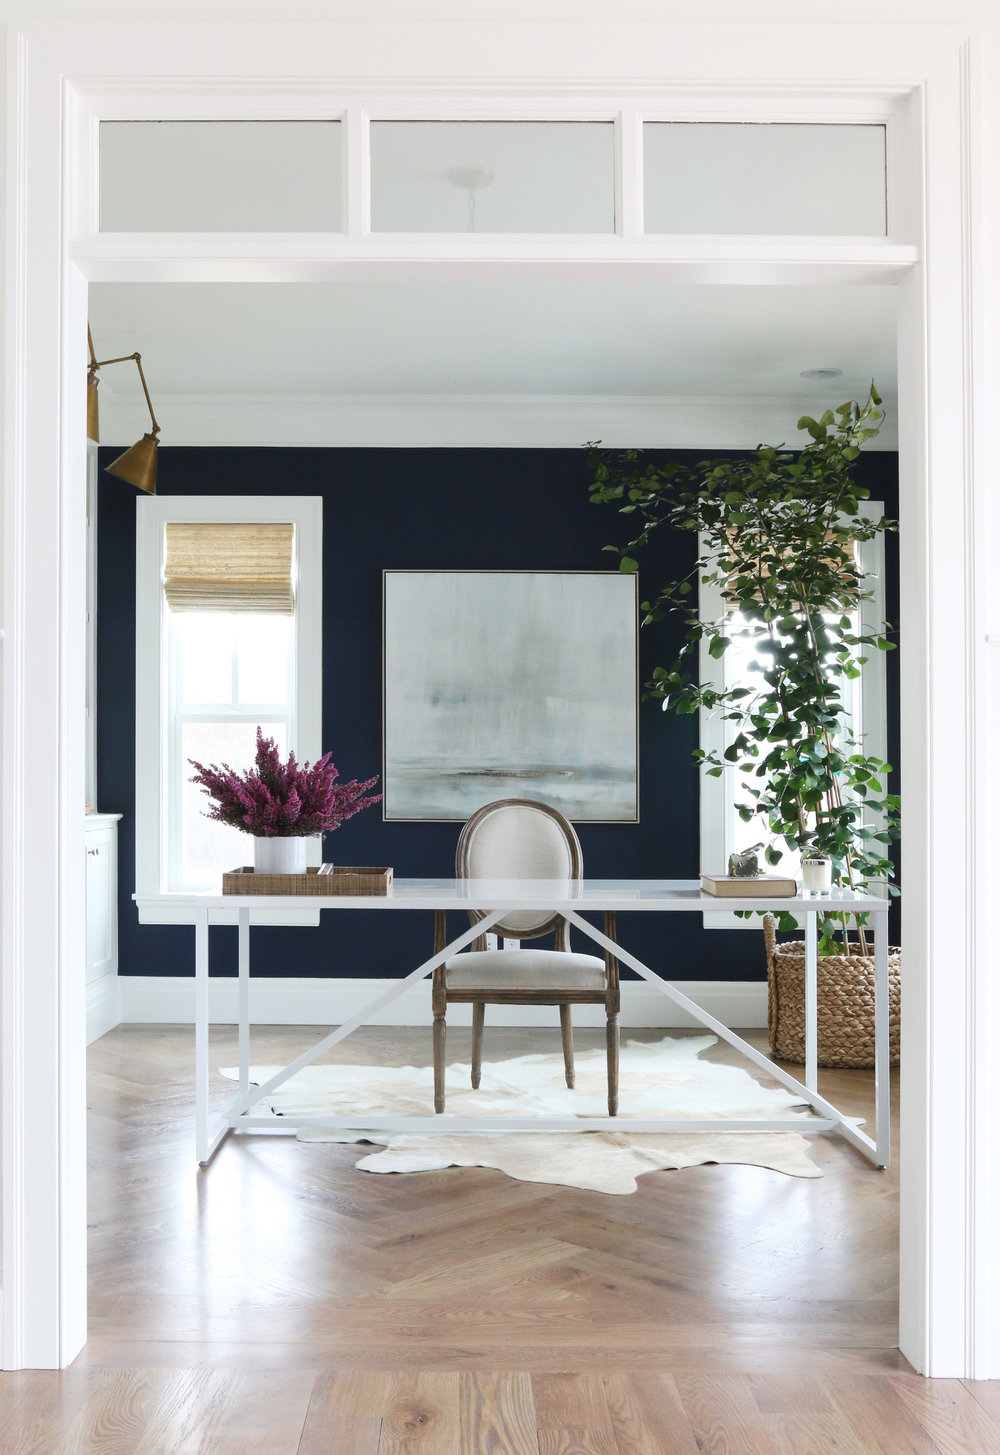 "Mistake #5:White Walls - This will probably be my most controversial ""mistake."" But don't take ""white walls"" to mean no white at all. I love white and in the right spaces it really is the best color (like the foyer from Mistake #1 above), but so much drama and dimension can be added to a home with a dark hue like navy blue or even a muted grey. When it came to decide what color to paint the inside of our rental I was sure white was the right choice because of the small size of home, but after further thought and research I decided on Behr's Silver Drop, a neutral muted grey. I'm so glad we went with Silver Drop over white; it makes our small rental feel both bigger and cozier. I also love that our white/light colored furniture and decor doesn't just disappear into the walls. I would 100% use Silver Drop again in our next home, but I can't wait to have the freedom to have a moody office or bathroom and play around with wallpaper too! So which team are you? White or color?"